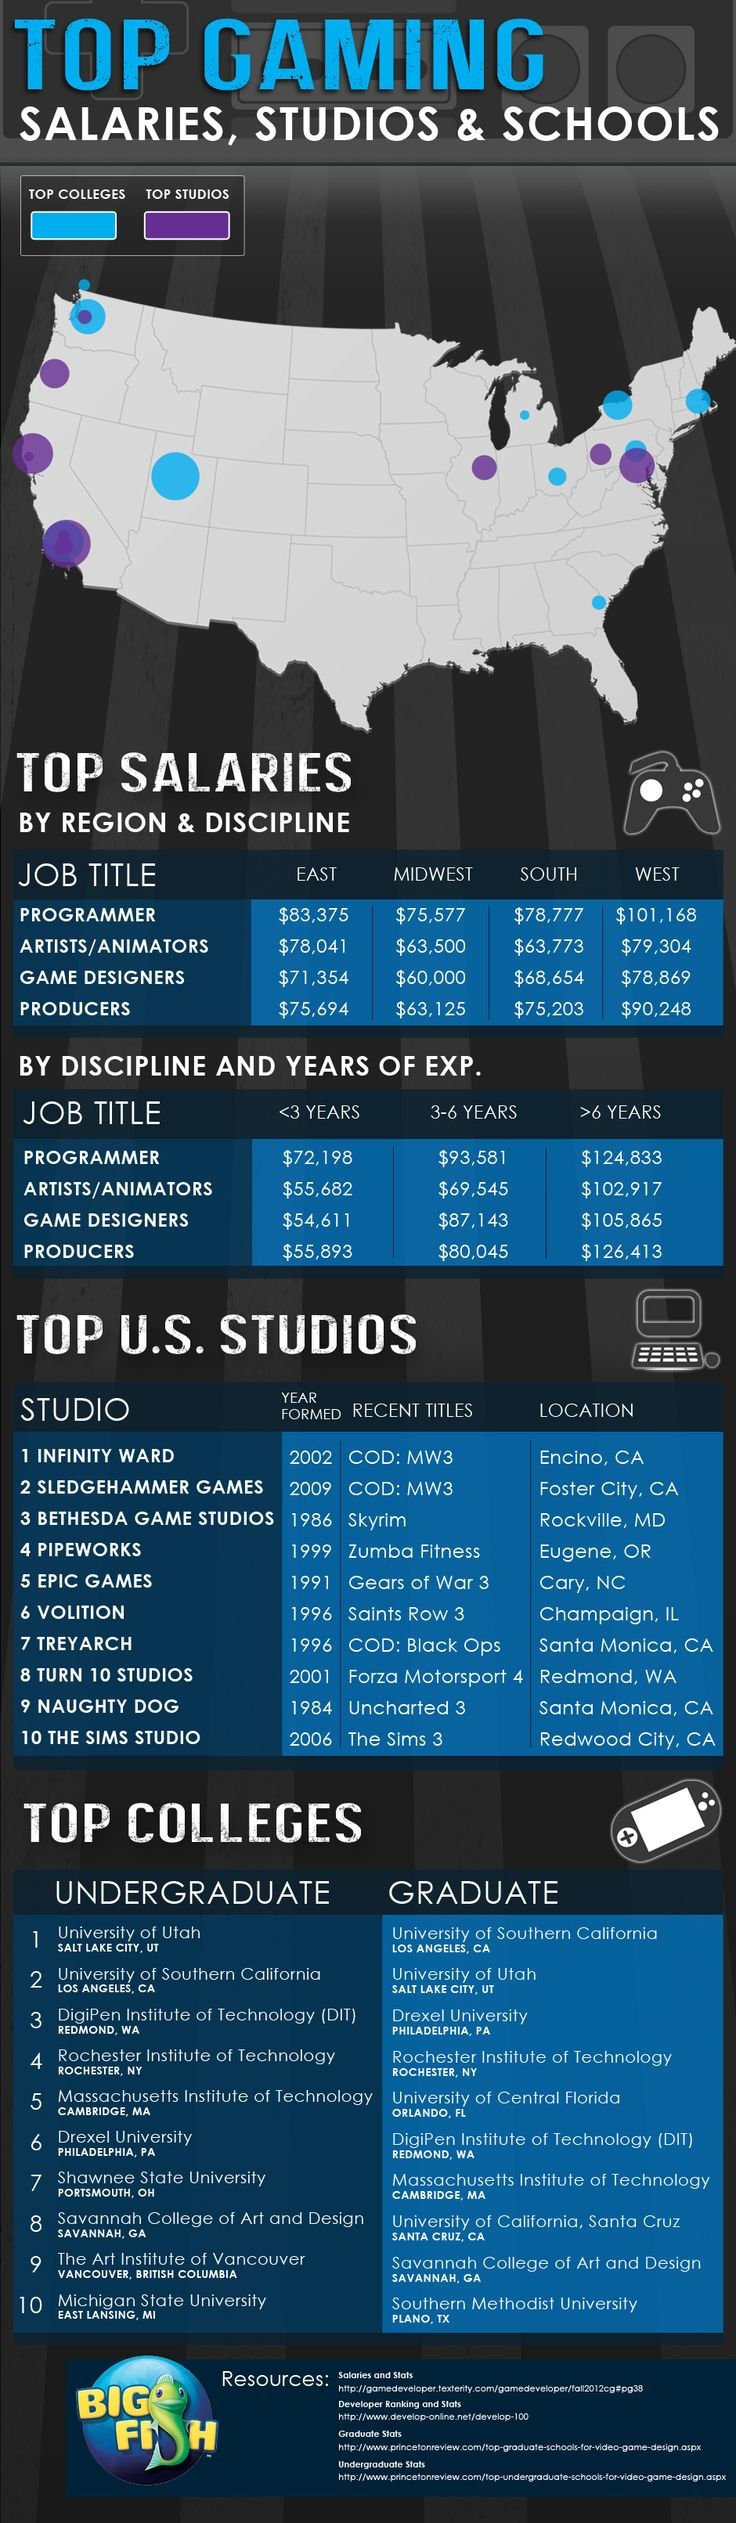 Think Gaming Is Fun? See How Much The Game Industry Professionals Earn [INFOGRAPHIC]